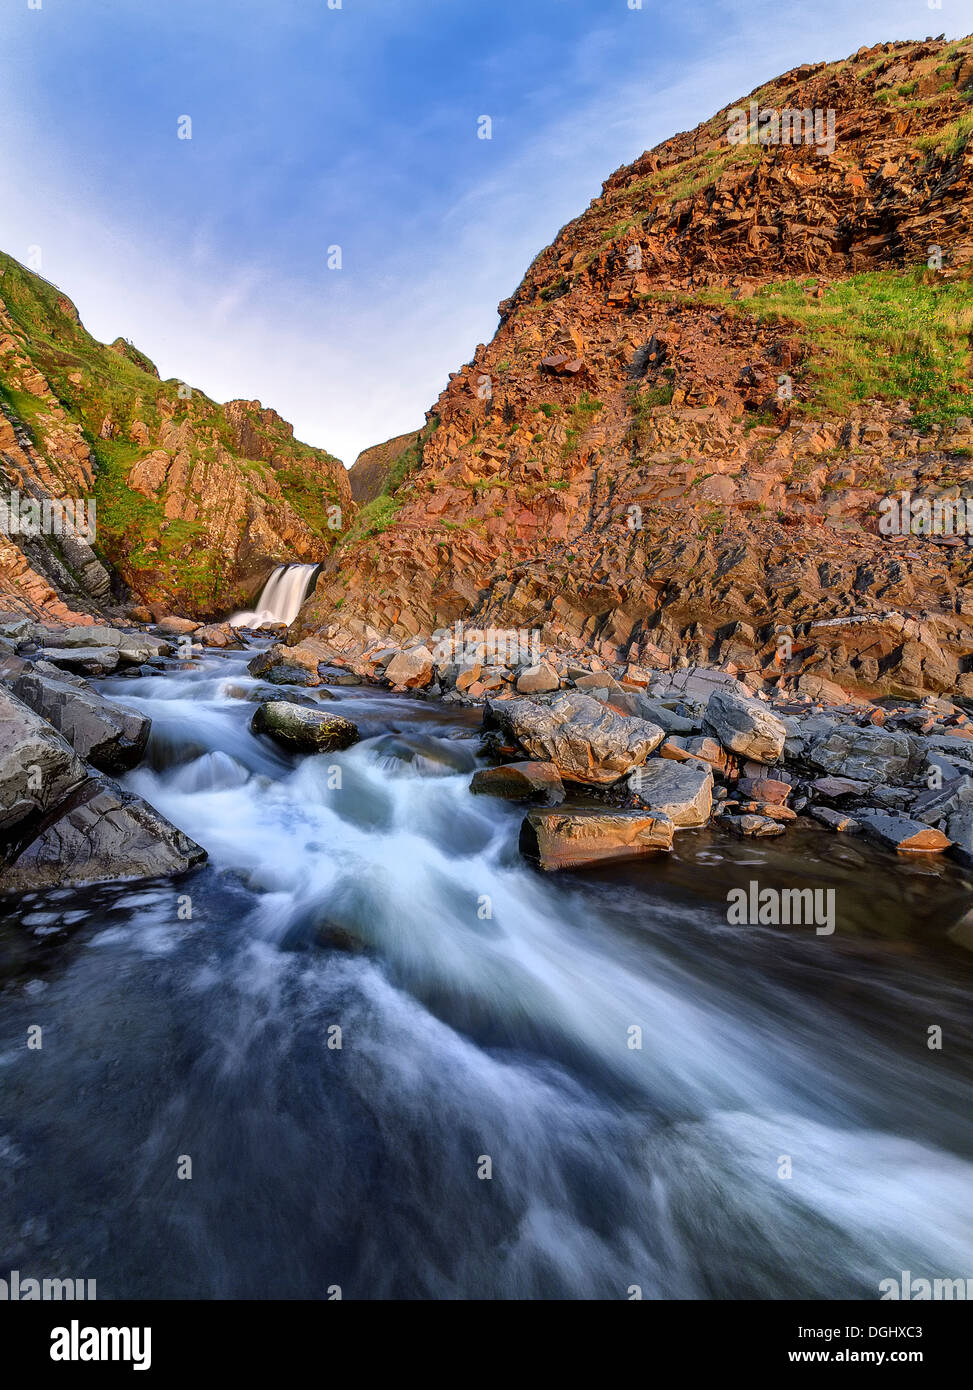 Views of Speke Mill near Hartland Quay. - Stock Image